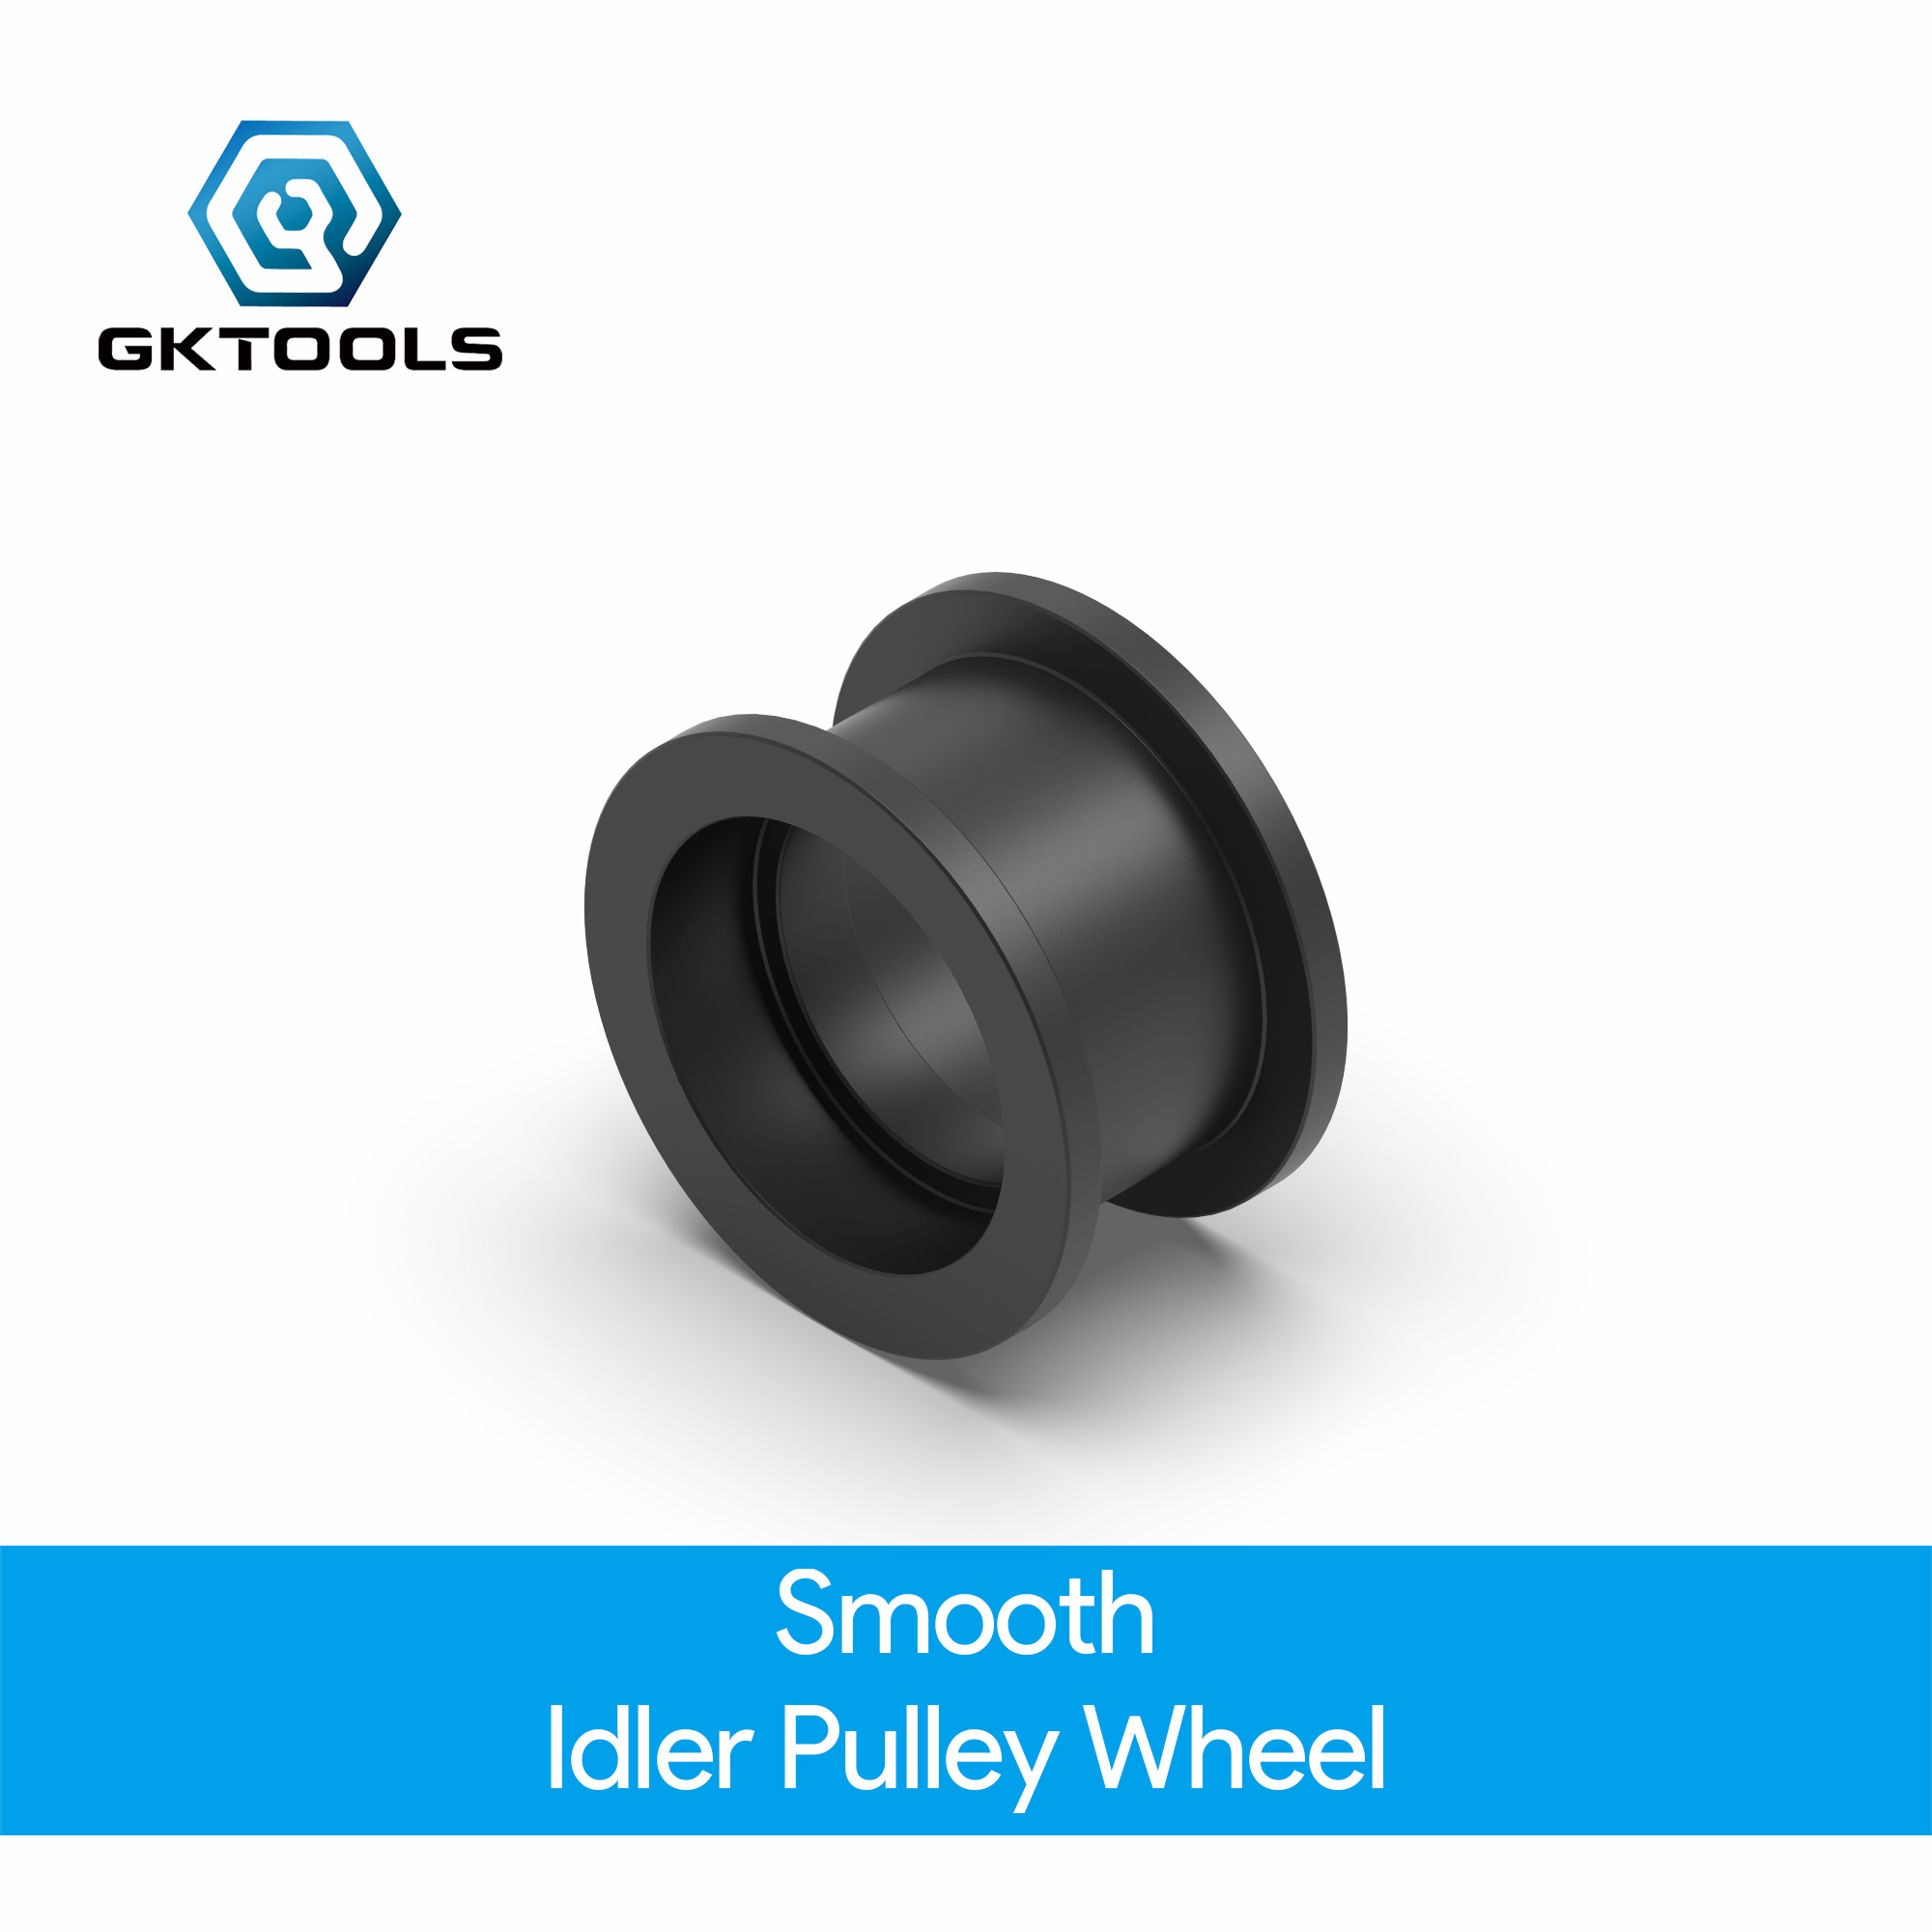 OpenBuilds Smooth Idler Pulley Wheel